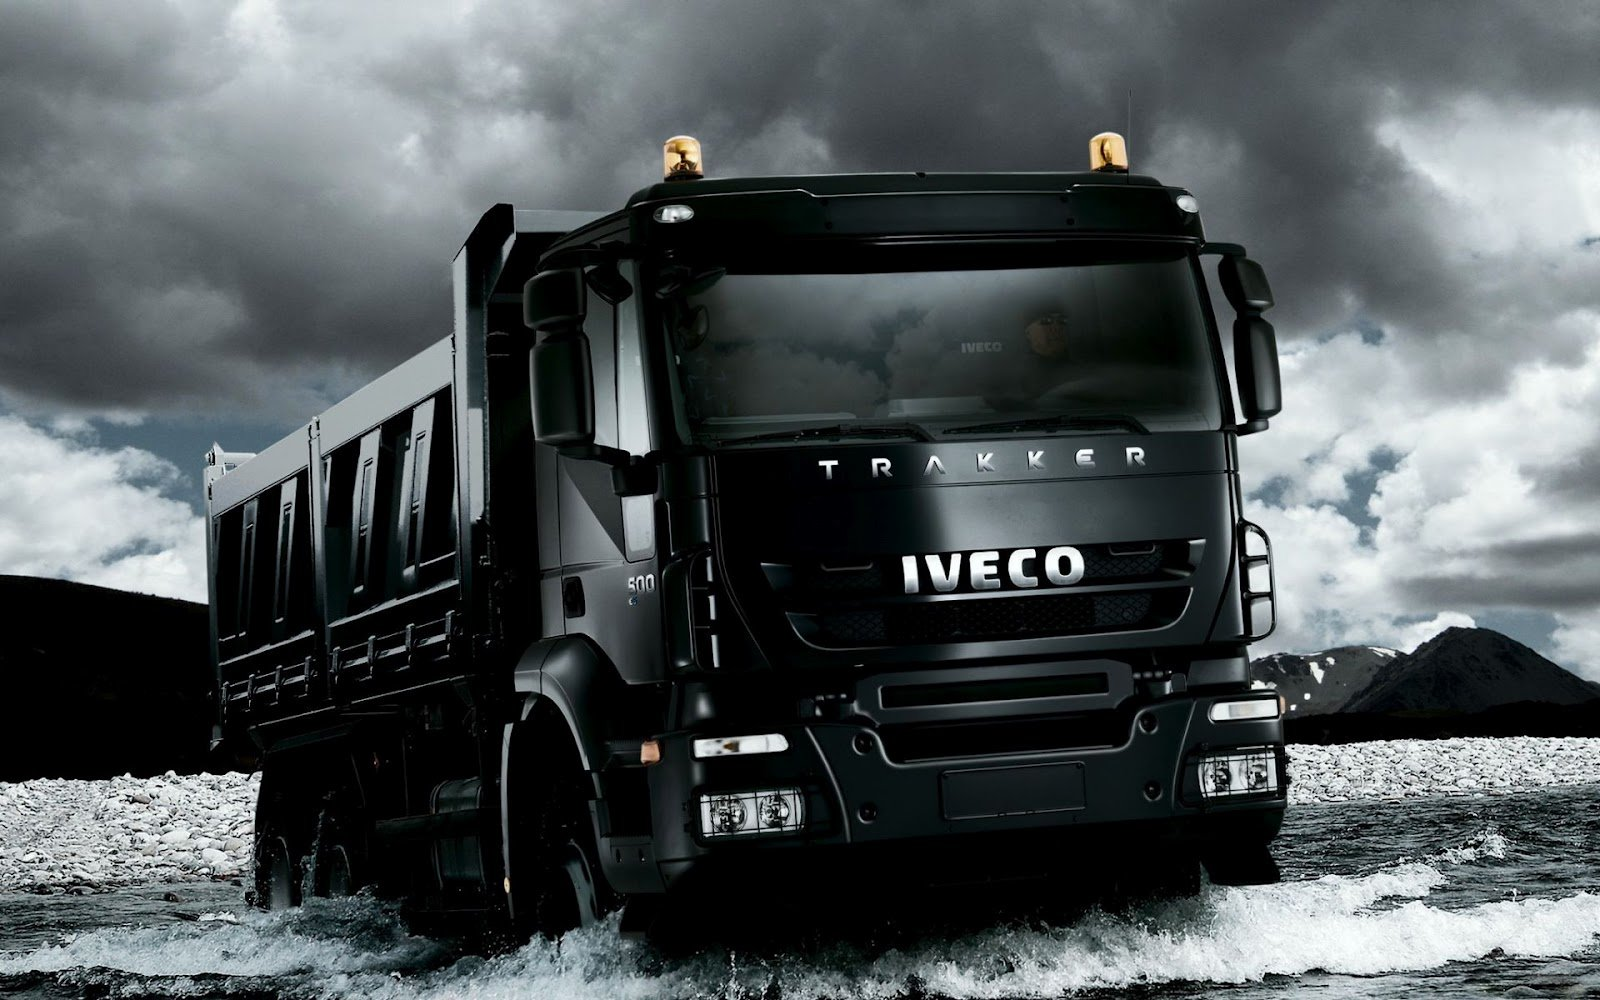 Black_Iveco_Trakker_Truck_HD_Desktop_Wallpaper.jpg